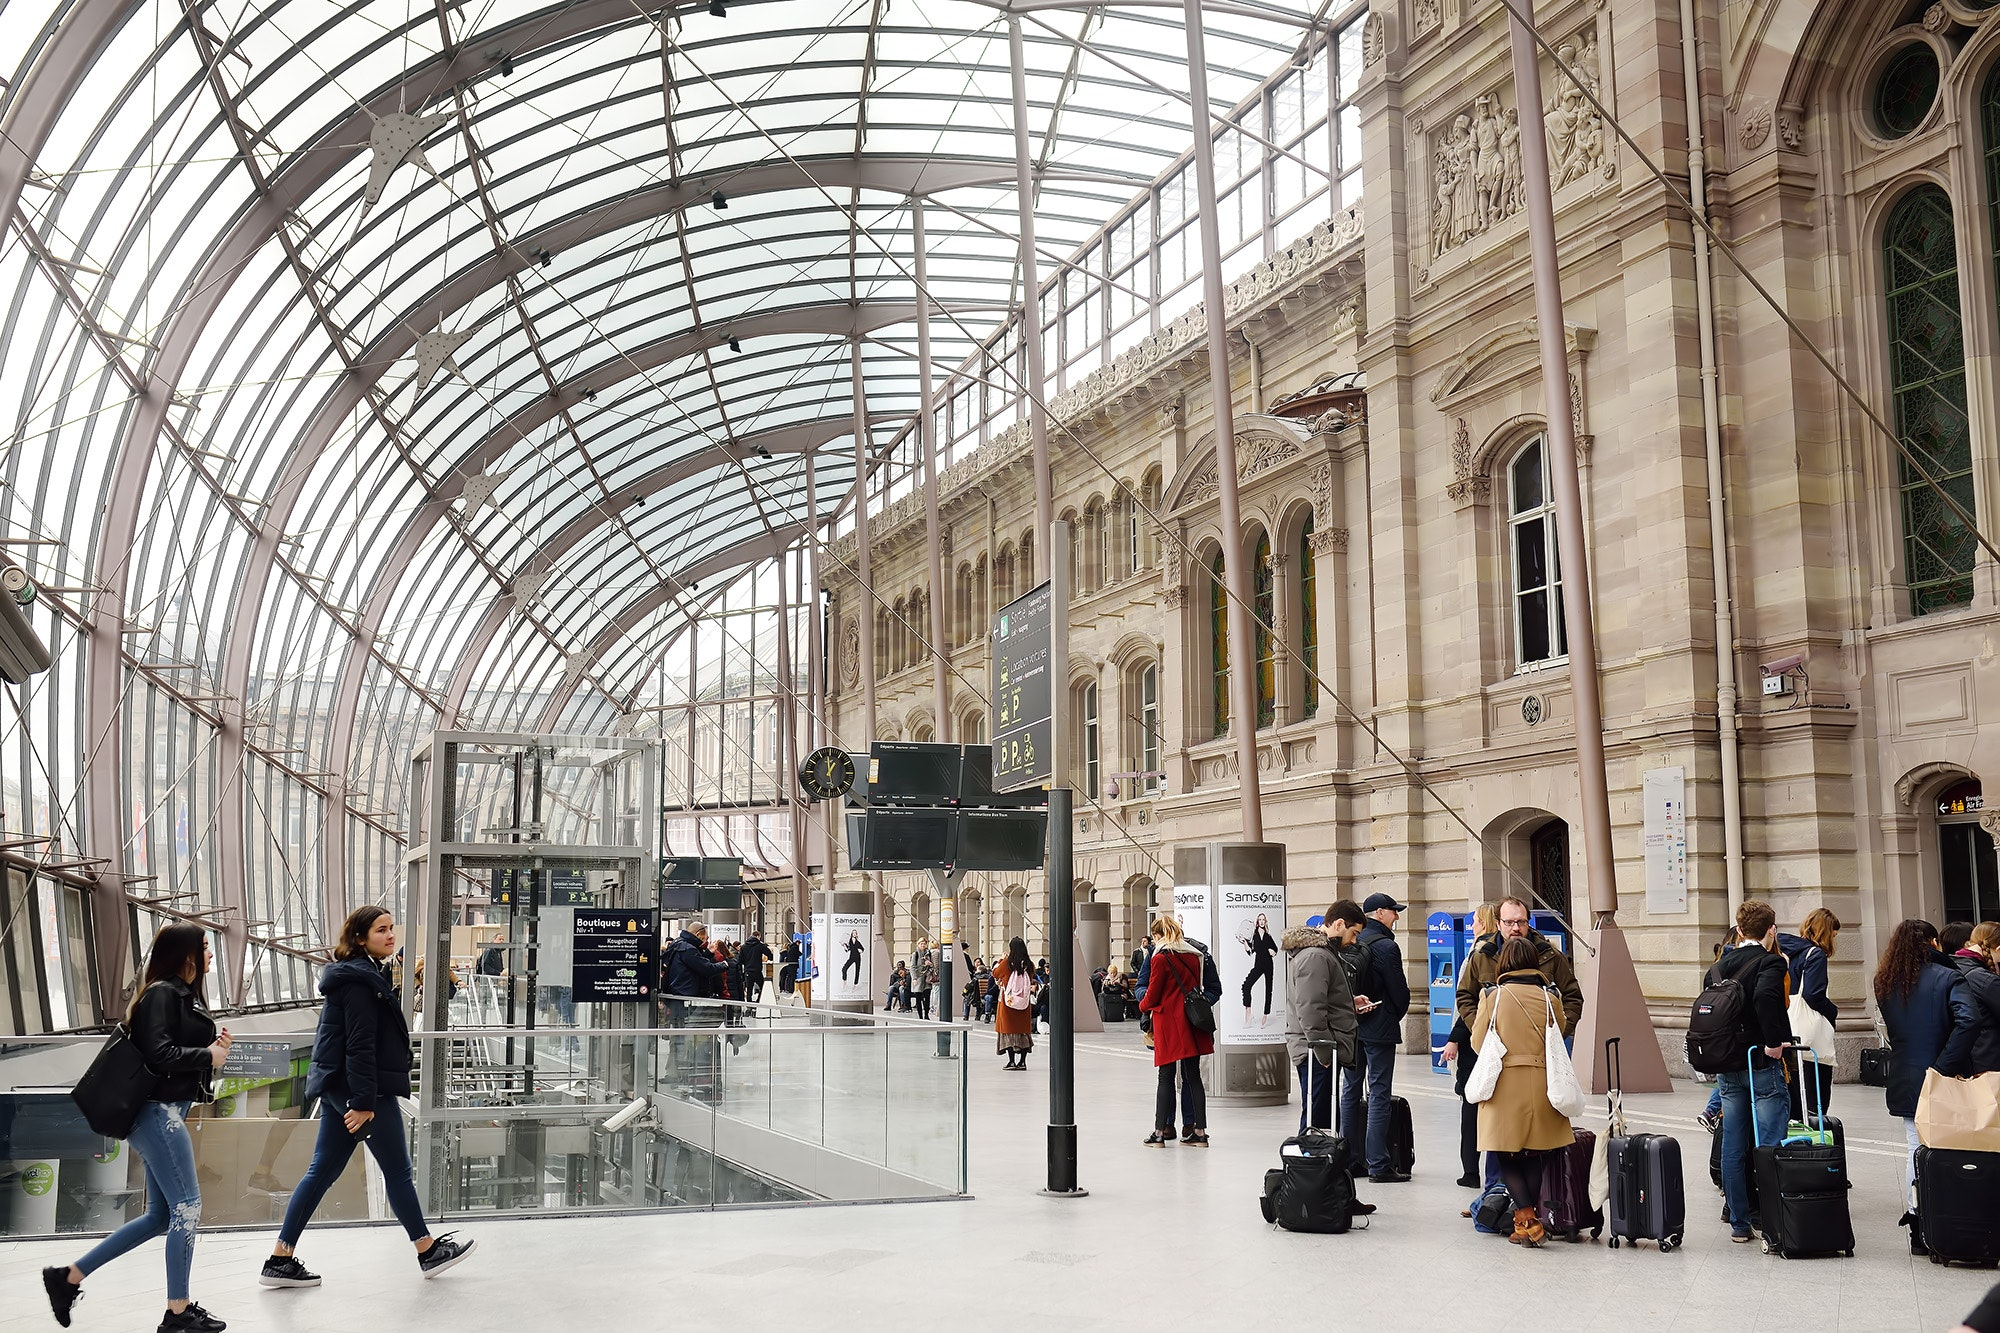 The historic Gare Ville station is surrounded by a glass pod, which protects the structure from the elements.